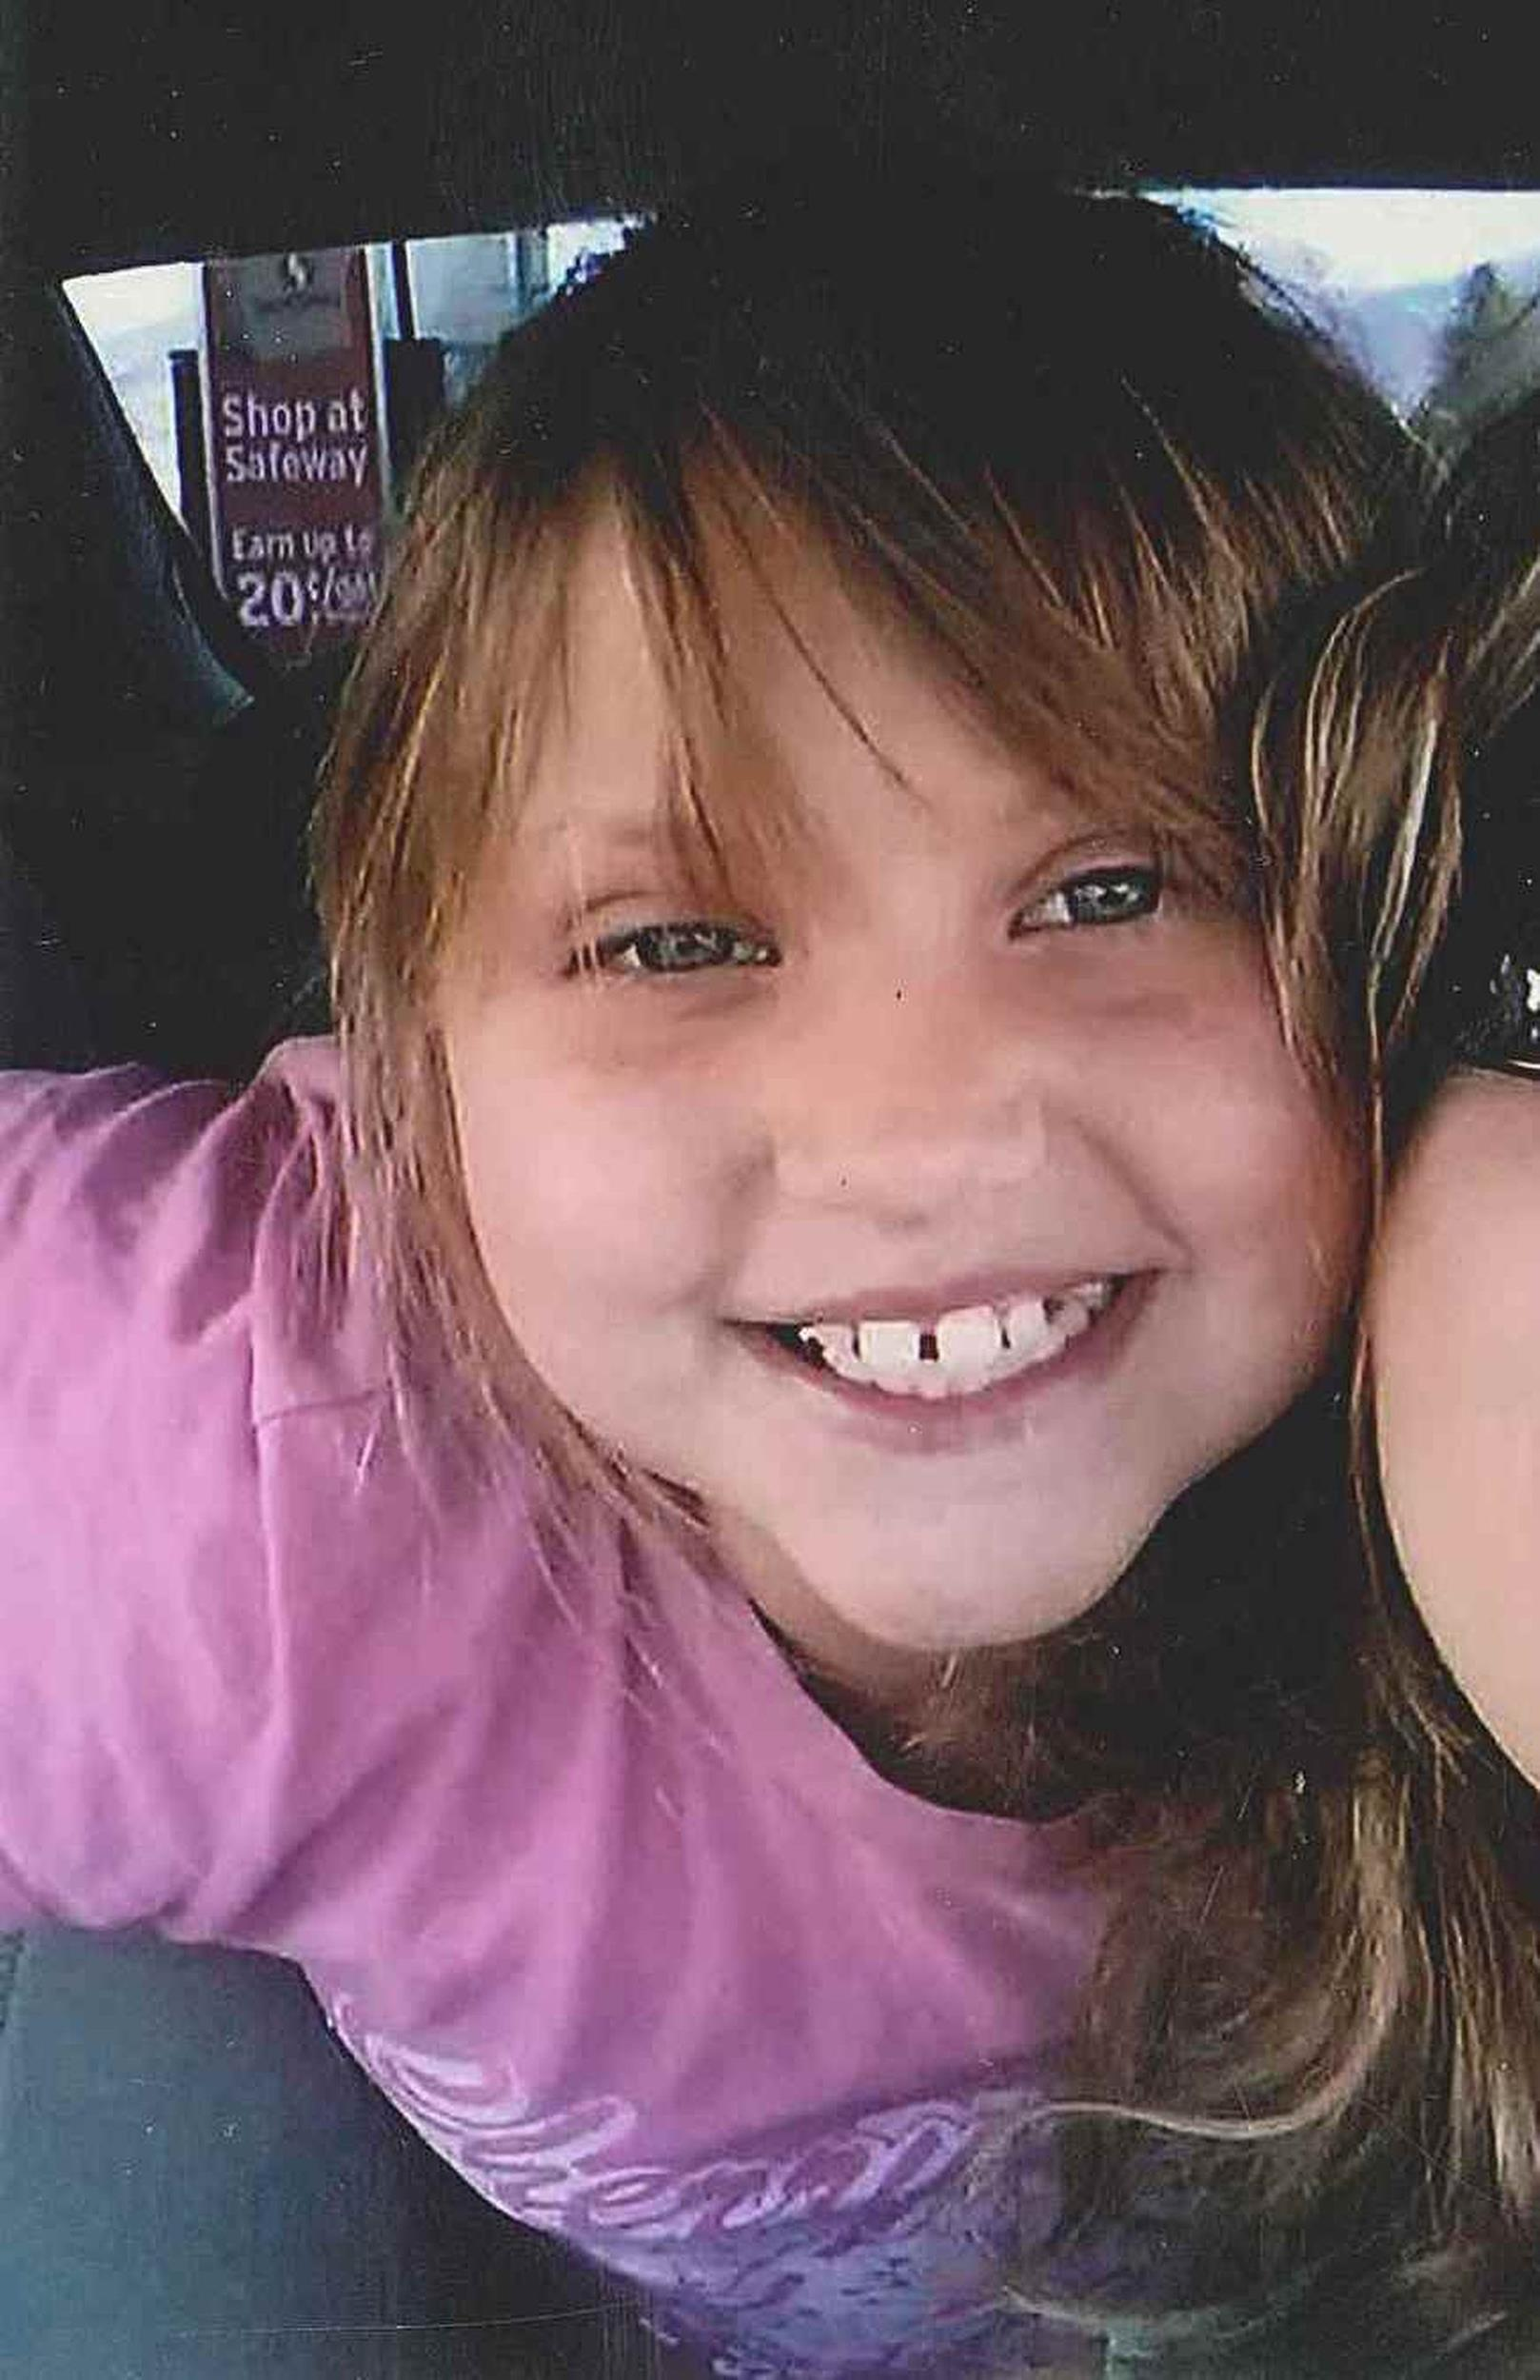 Family Friend' Arrested in Killing of Arizona Girl Isabella